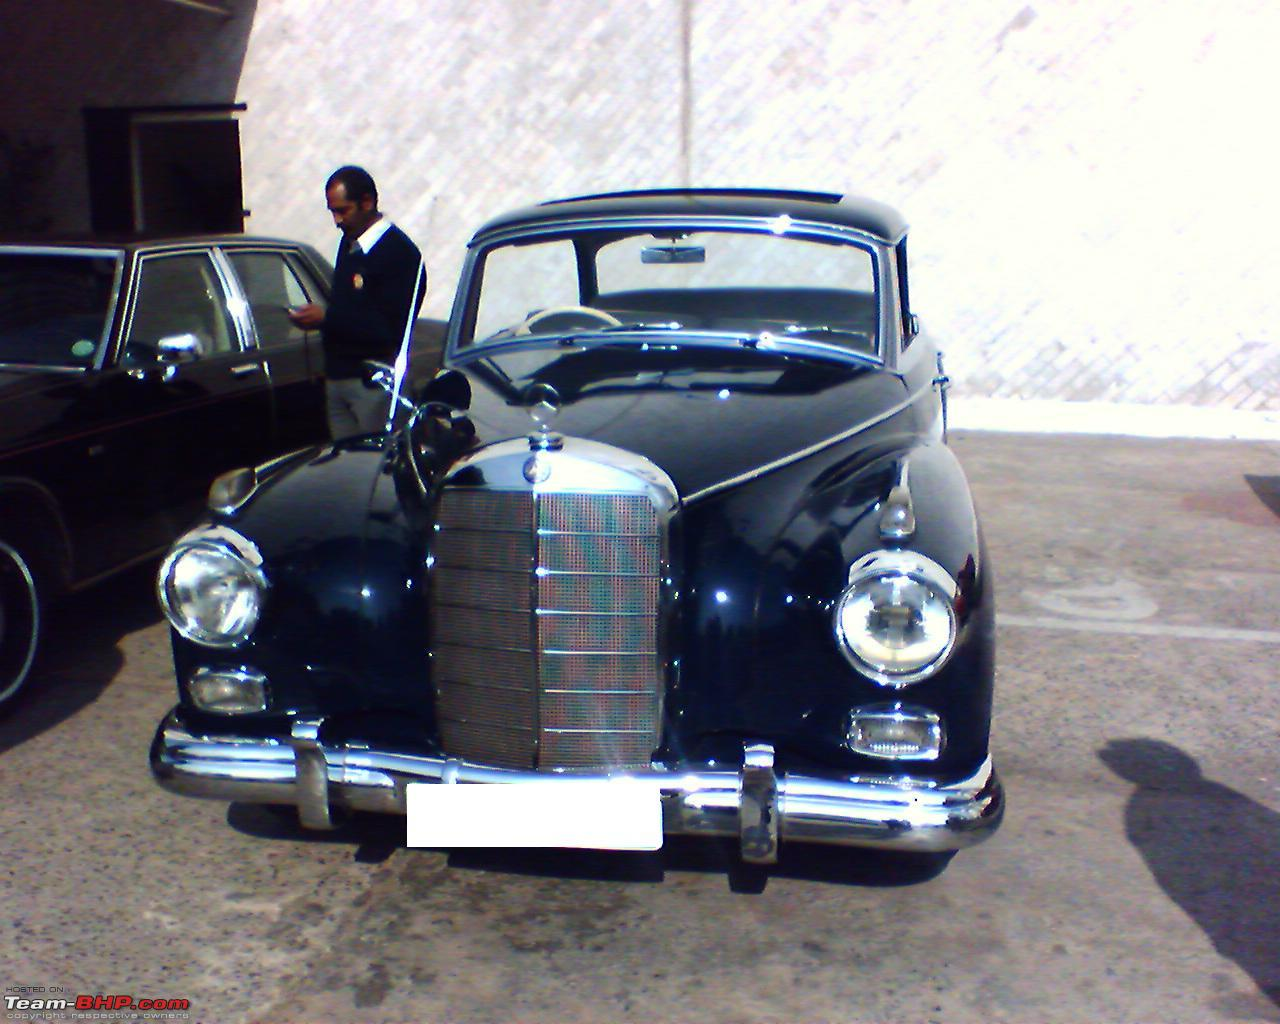 Vintage american cars for sale in india wroc awski for Mercedes benz for sale in india